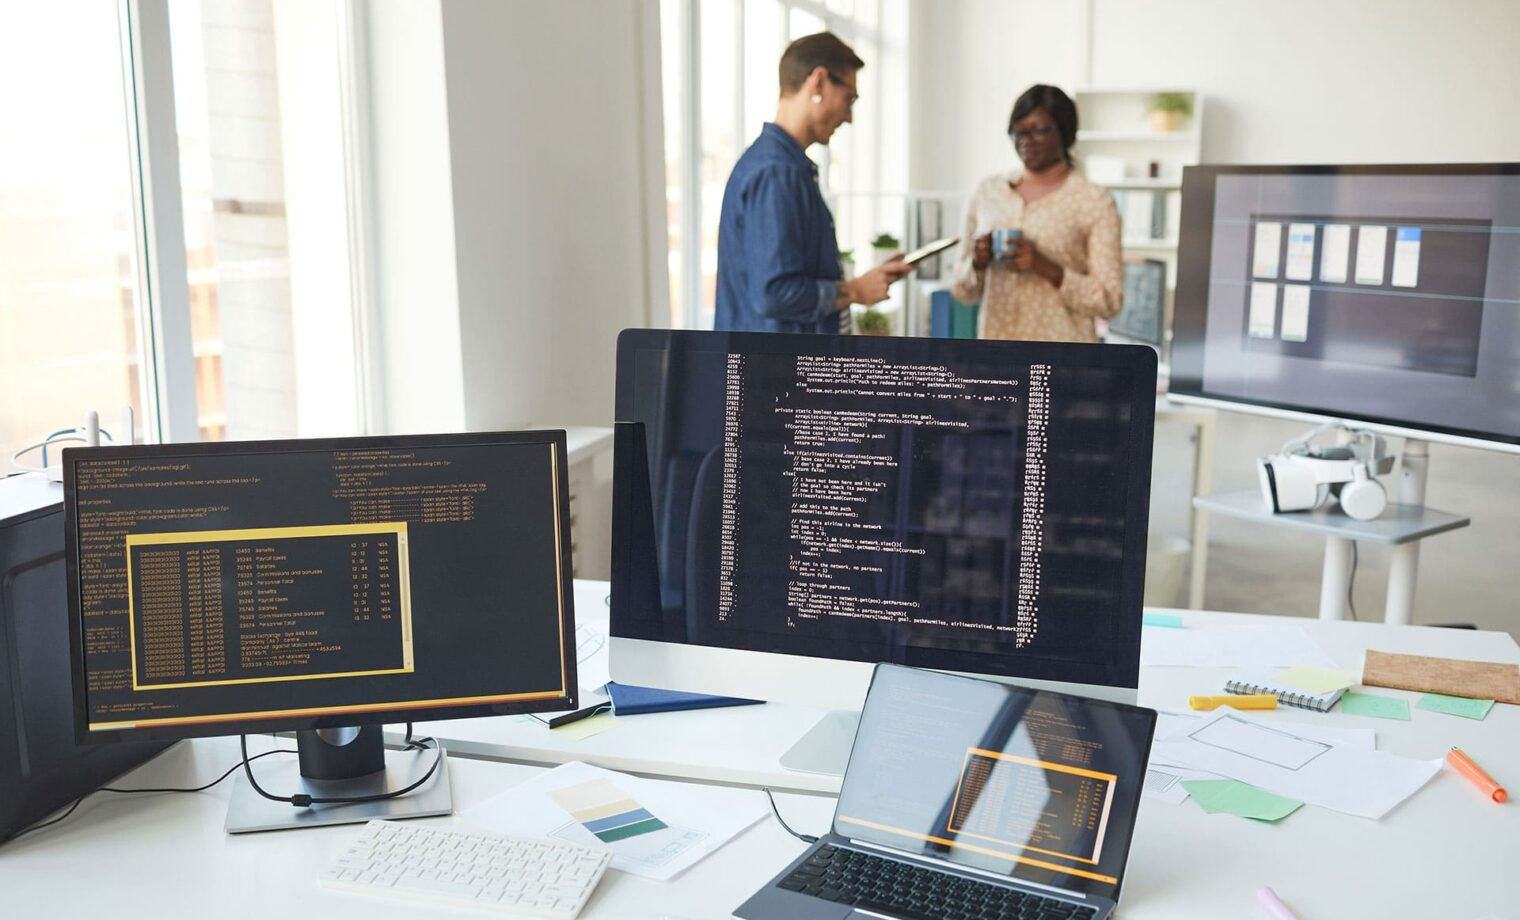 Software Testing & High-Quality Assurance that deliver quick results